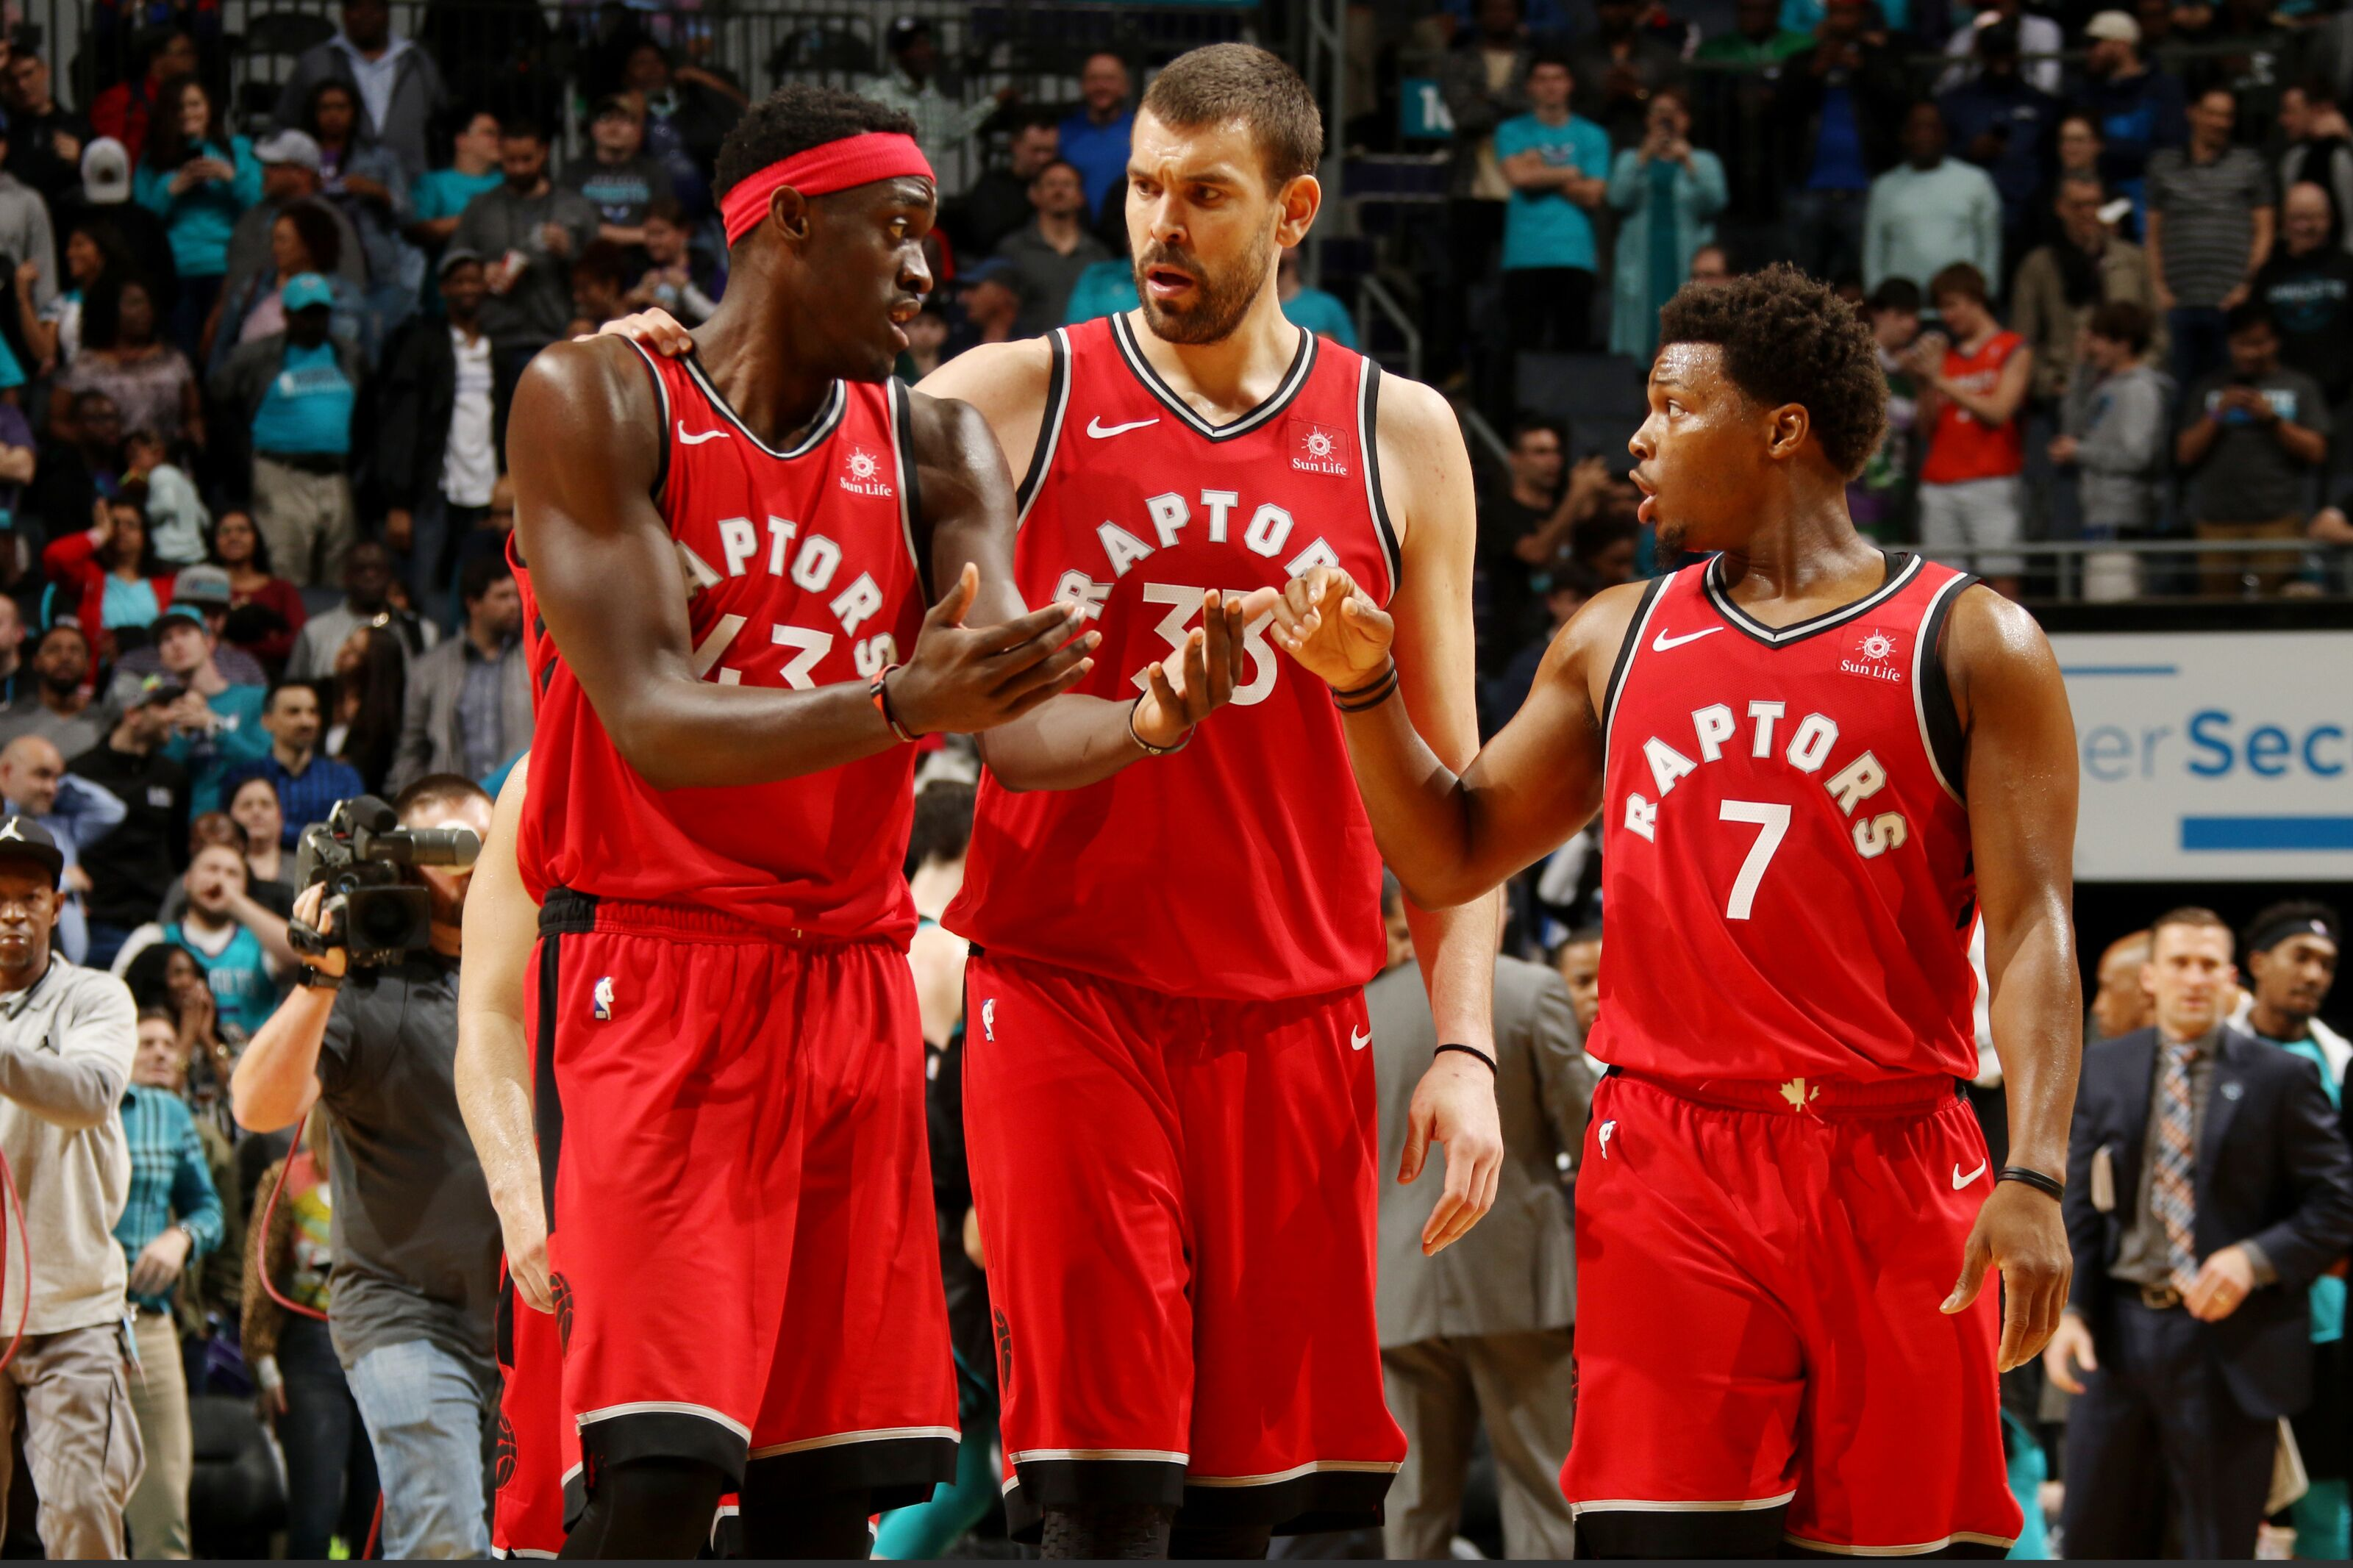 What will the Toronto Raptors look like next season and moving forward?